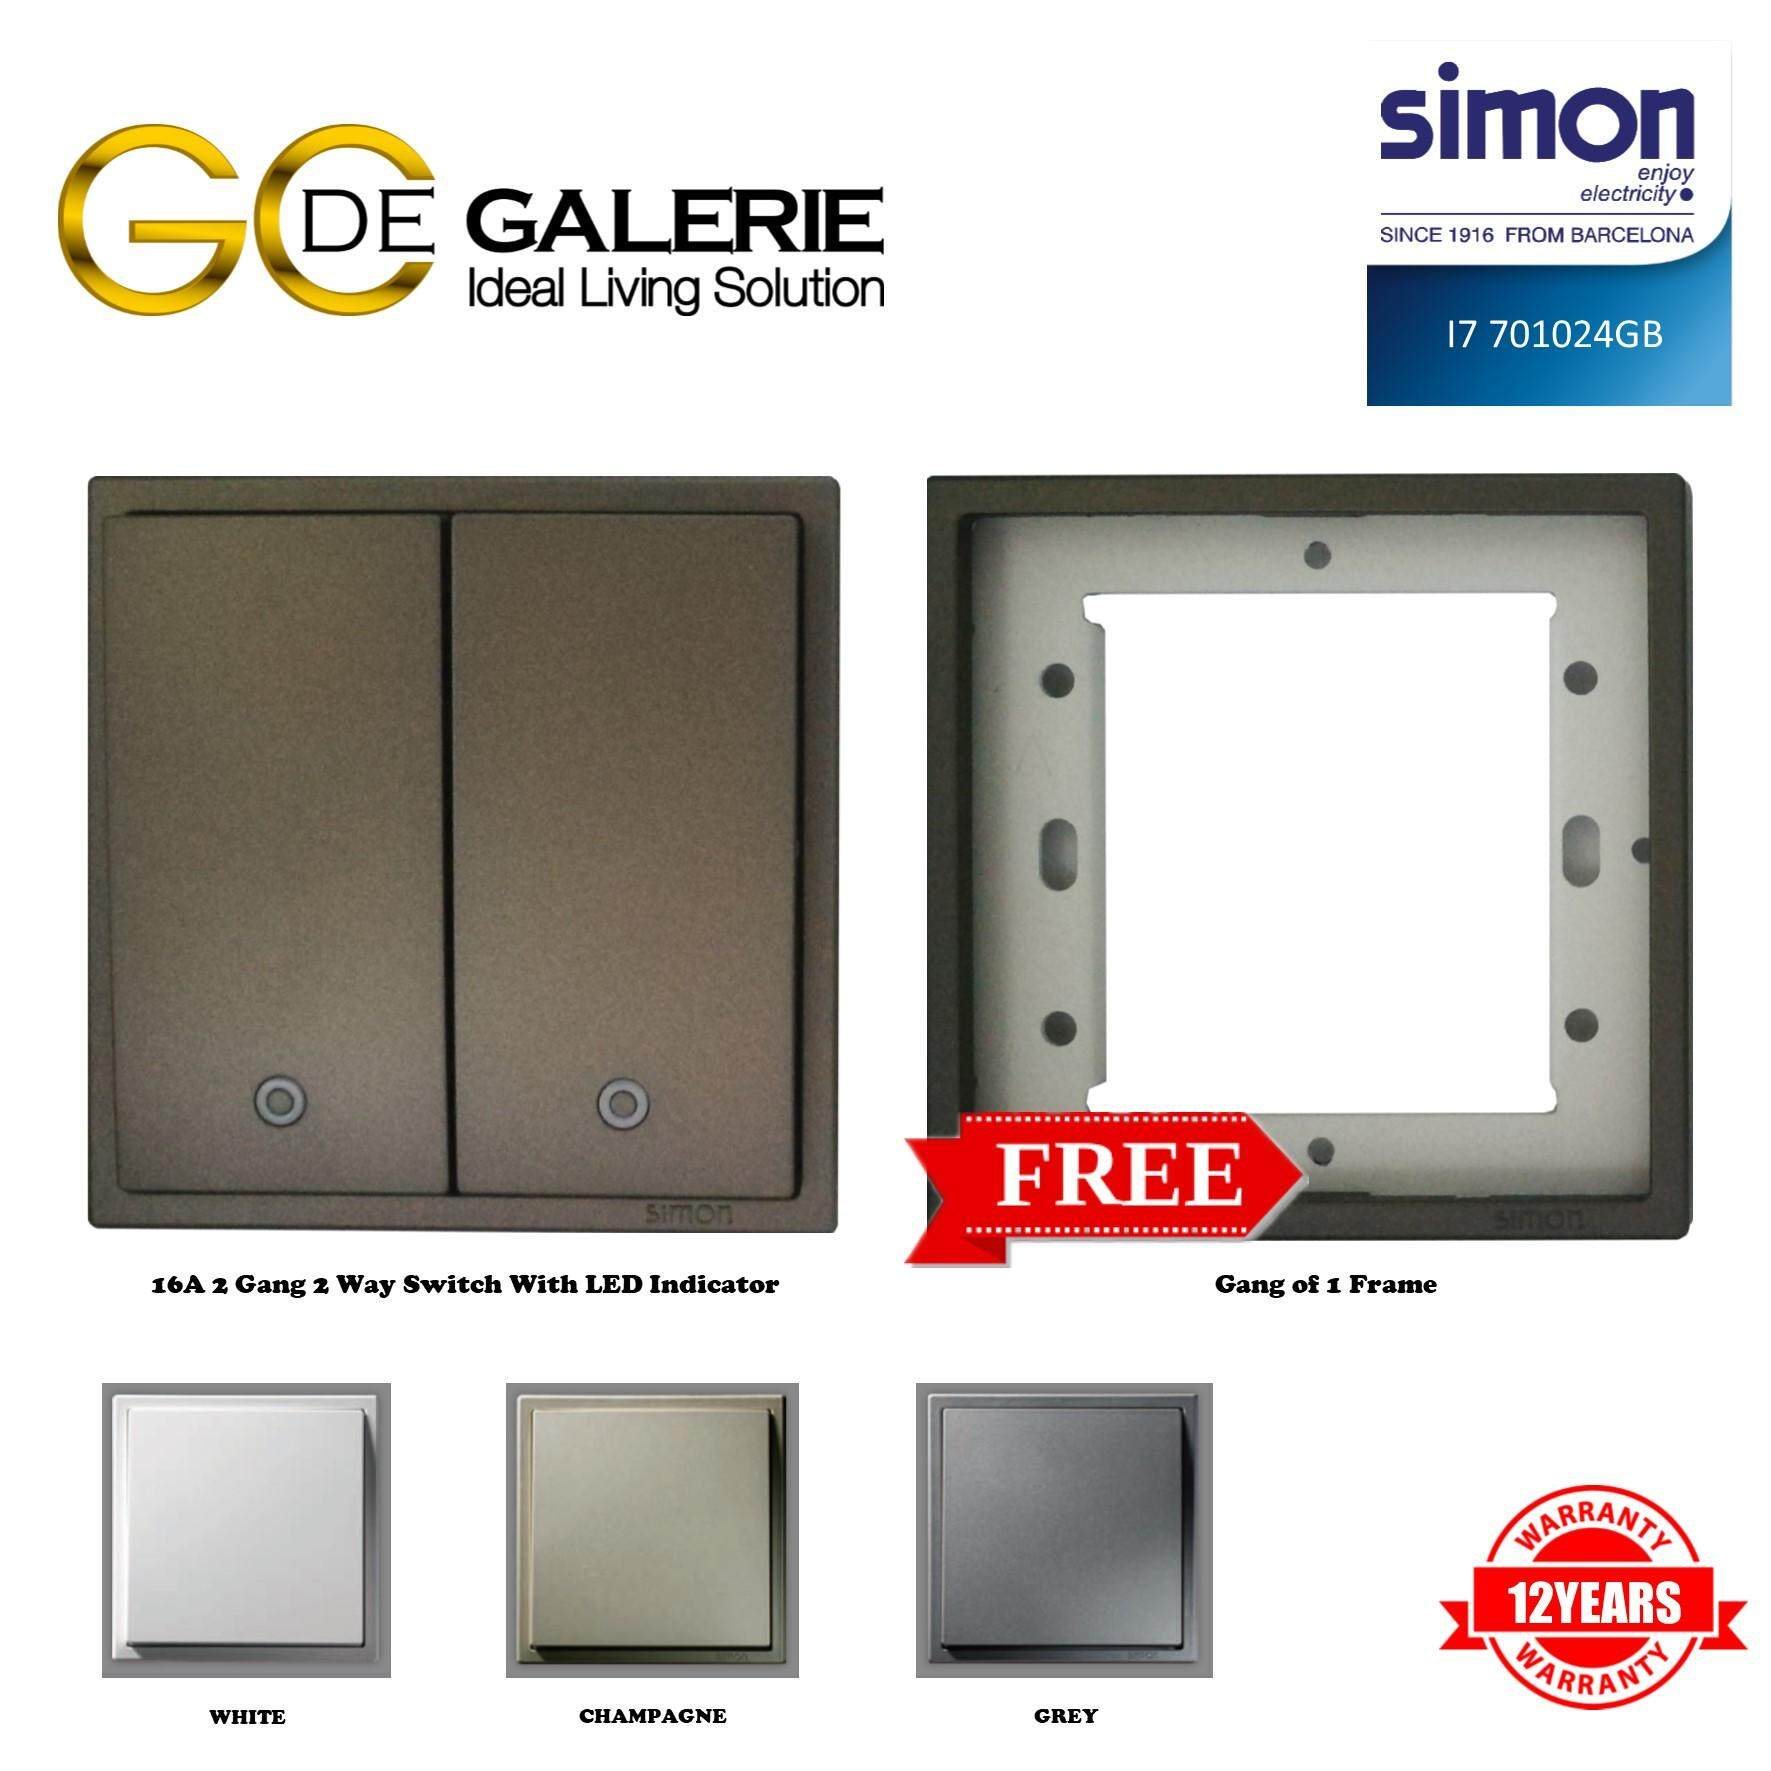 SIMON i7 SERIES 701024 2 GANG 2 WAY SWITCH WITH LED INDICATOR GRAPHITE BLACK FREE 1 GANG FRAME